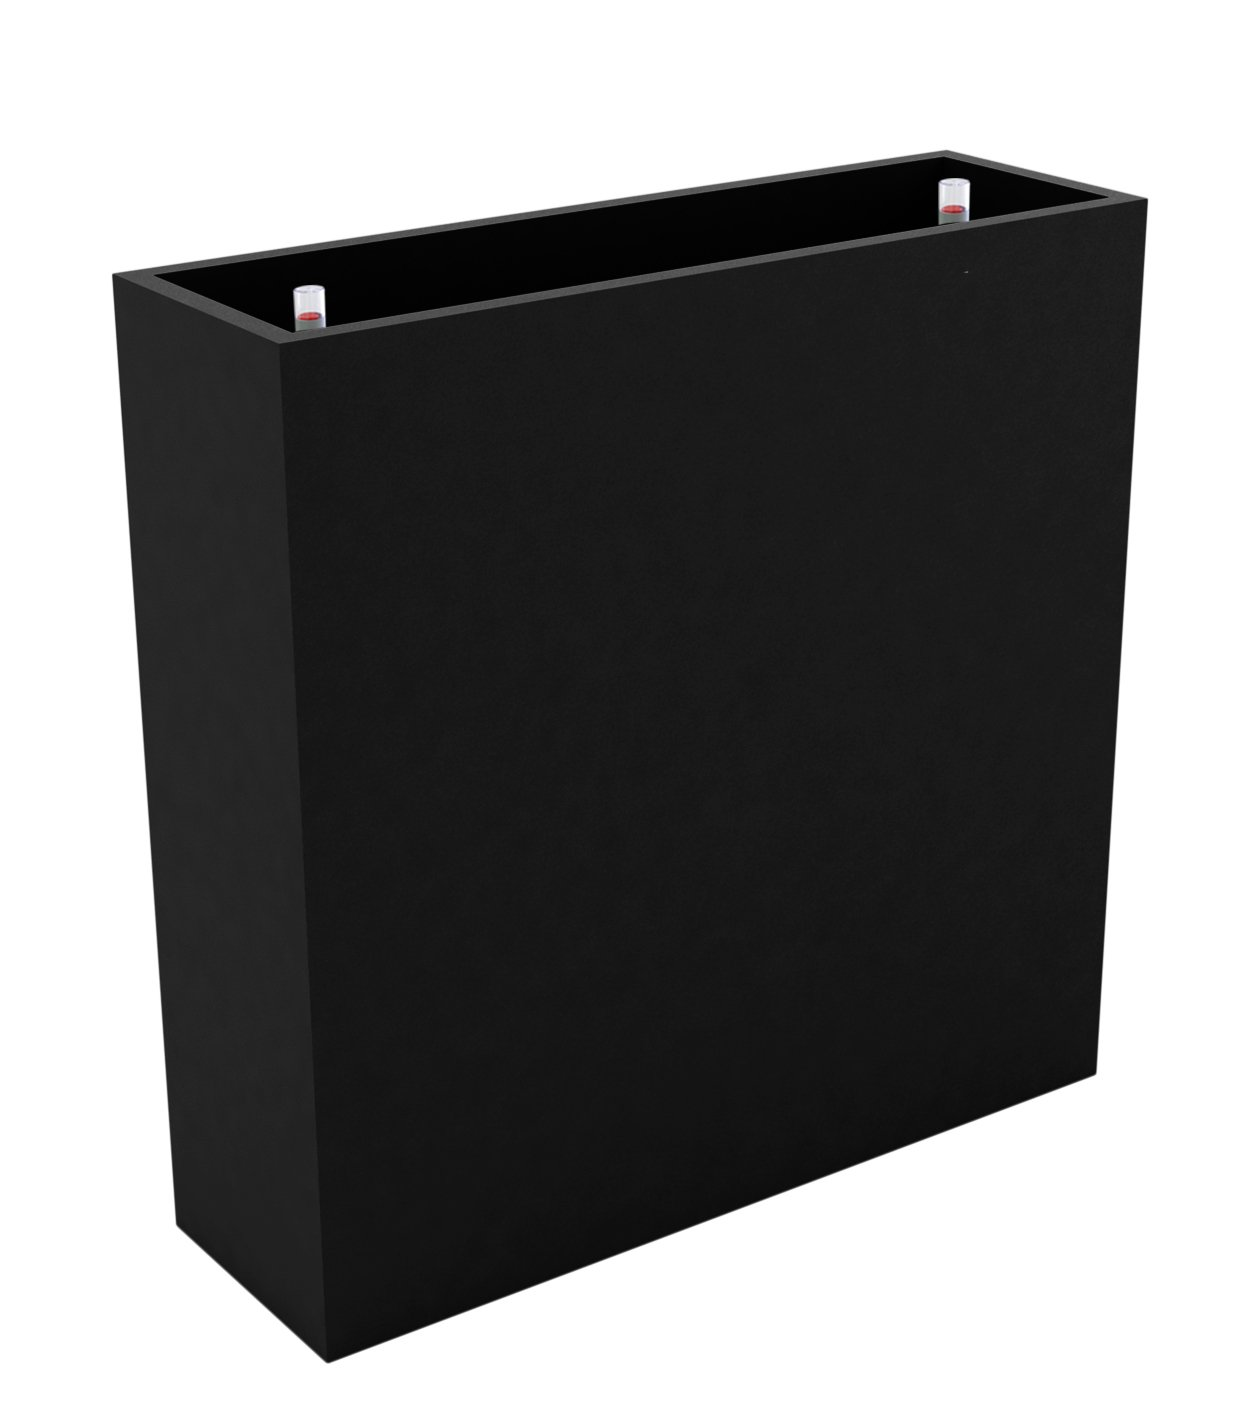 VONDOM Self Watering Wall Planter, 11-3/4 by 47-1/4 by 31-1/2-Inch, Black